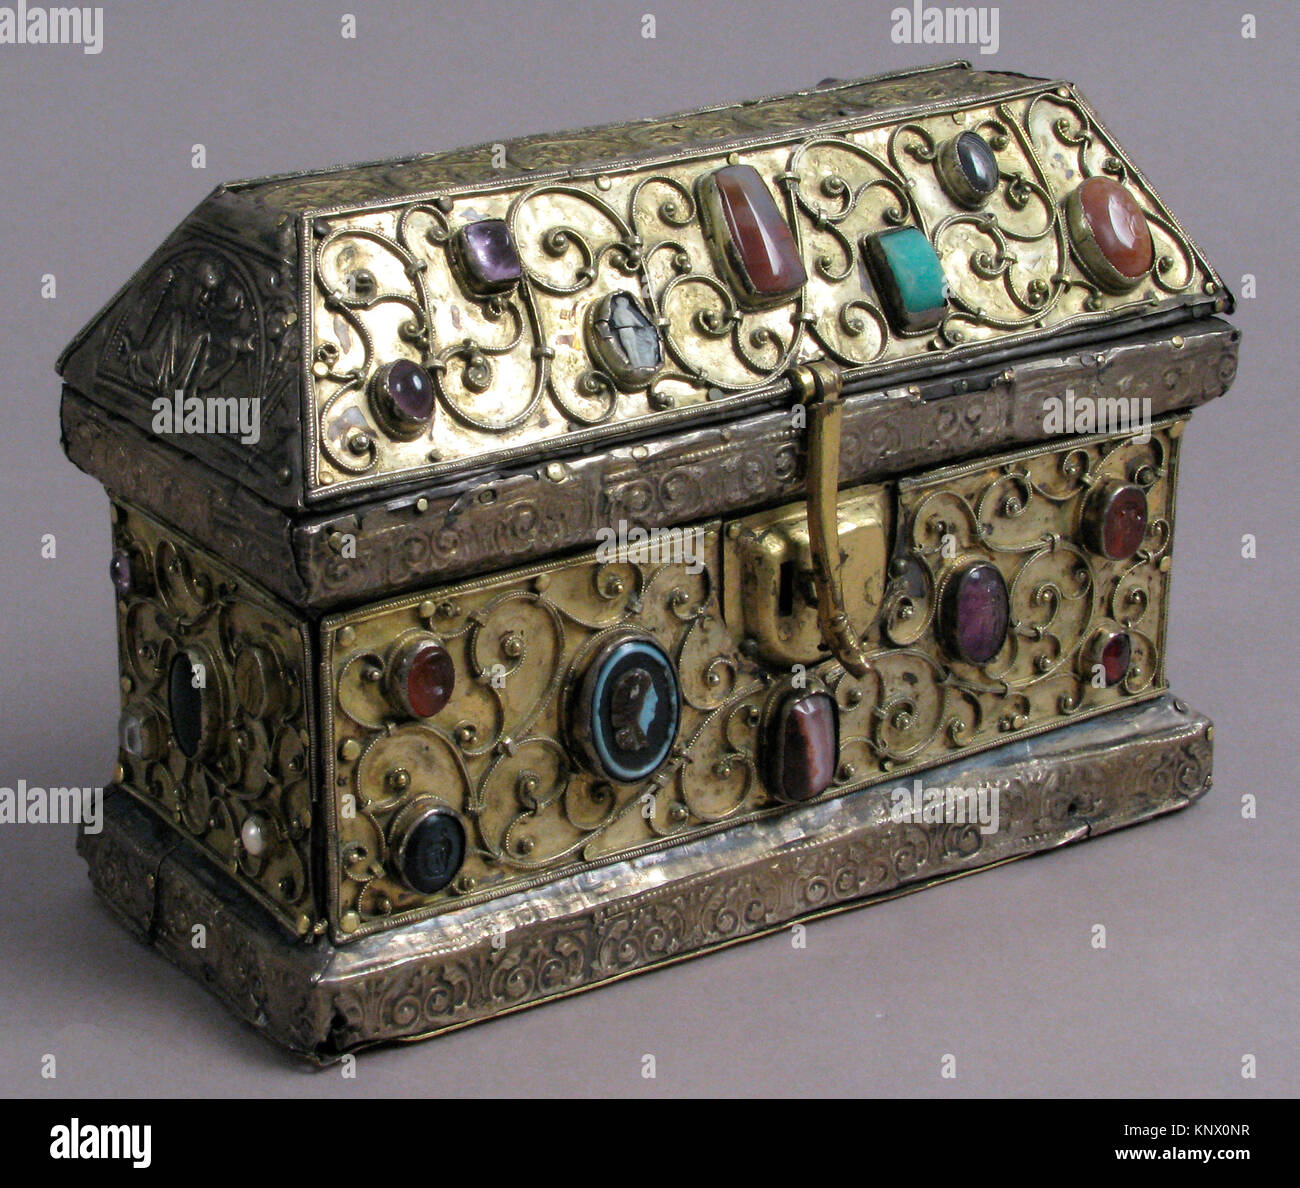 Chasse. Date: 12th century; Culture: German; Medium: Silver-gilt, wood, gems, intaglio, cameo over wood core; Dimensions: - Stock Image